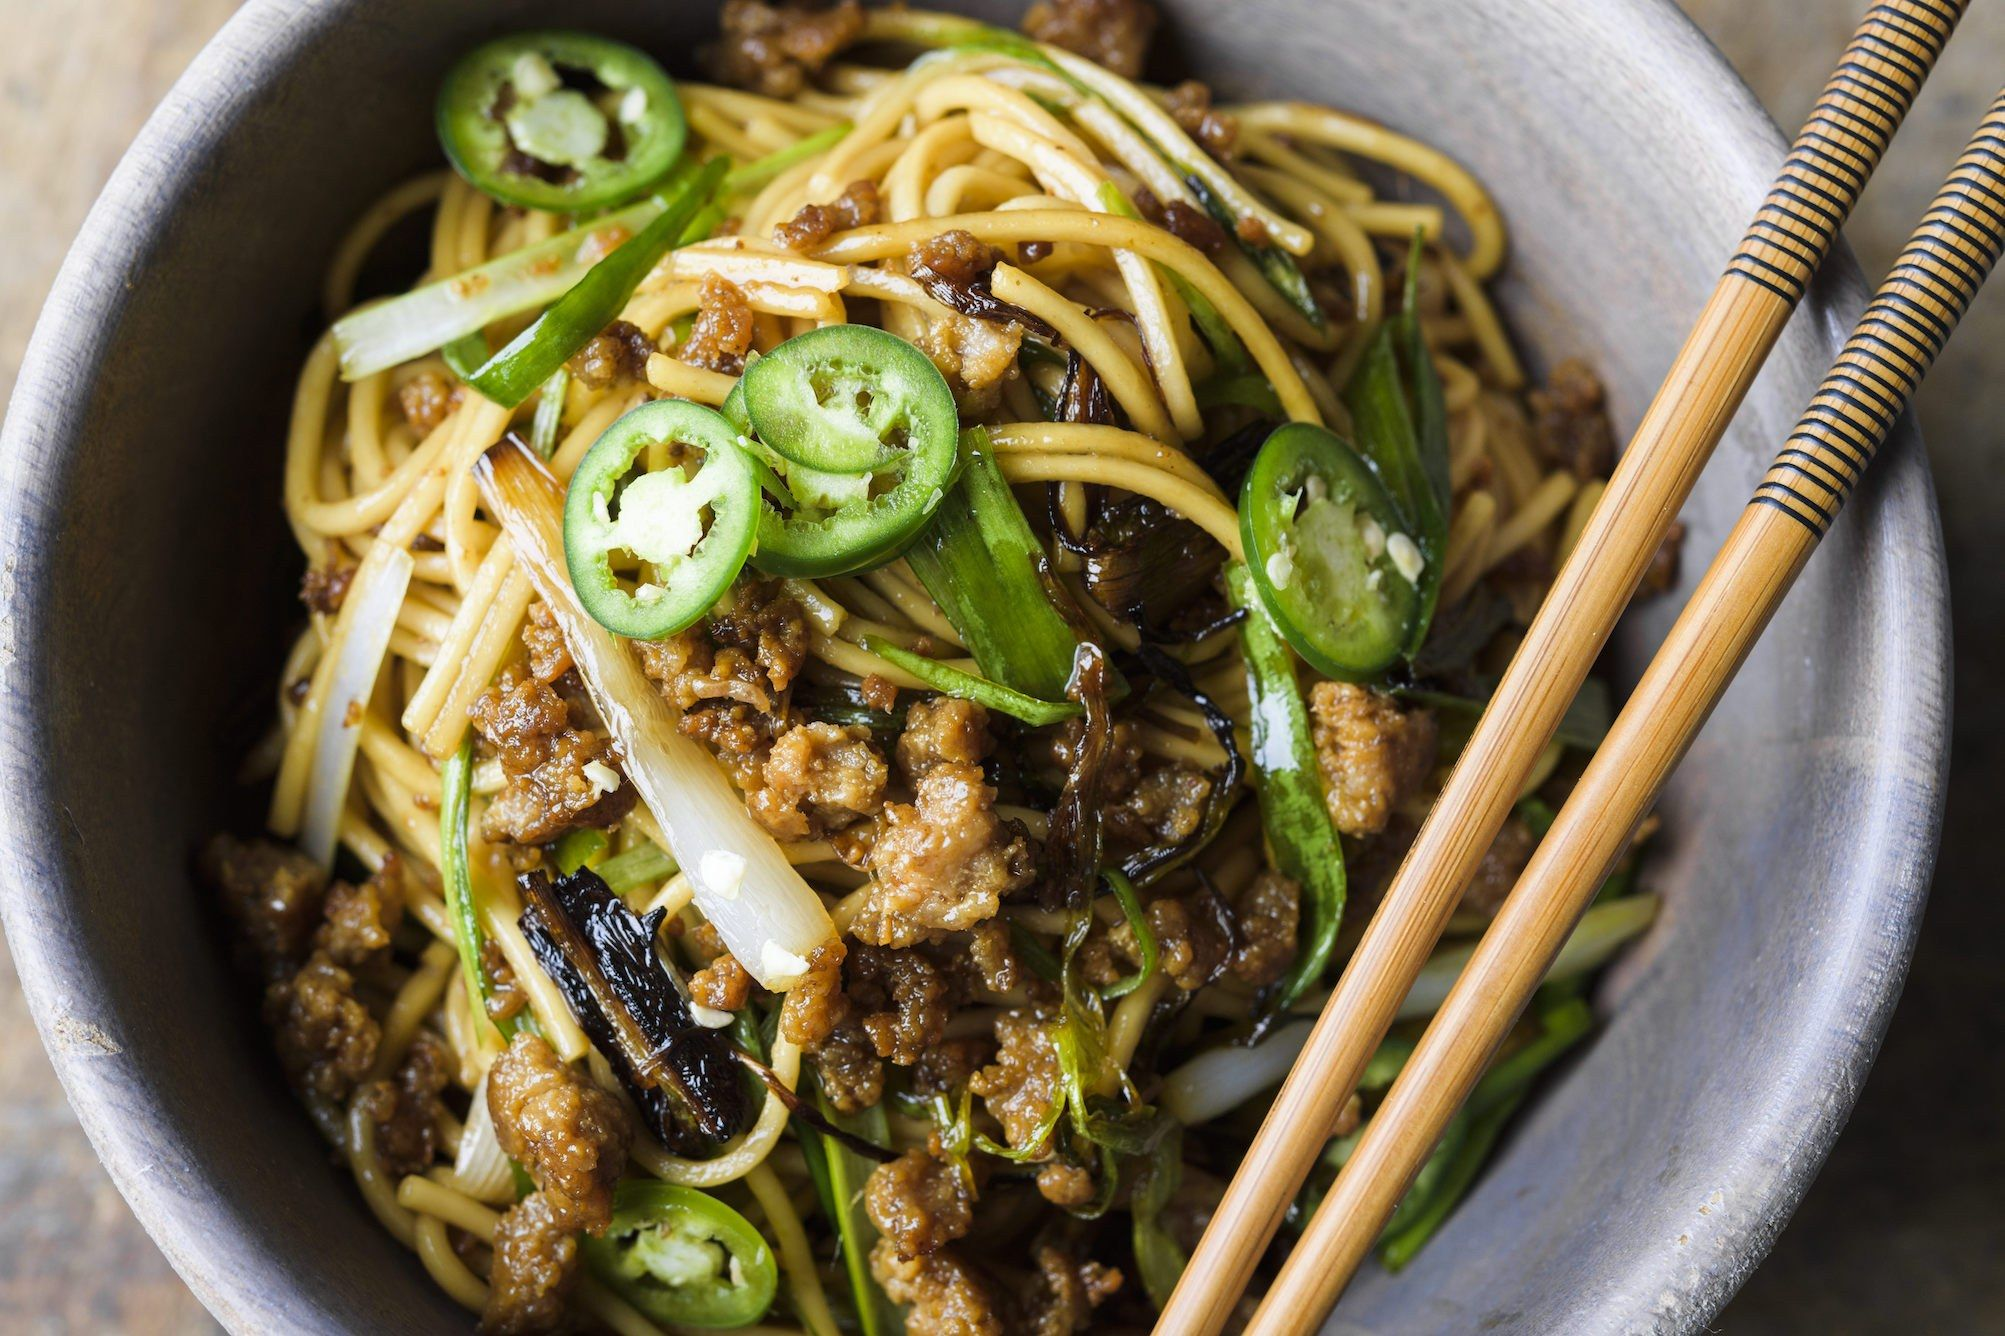 Shanghai-Style Scallion Noodles with Ground Pork